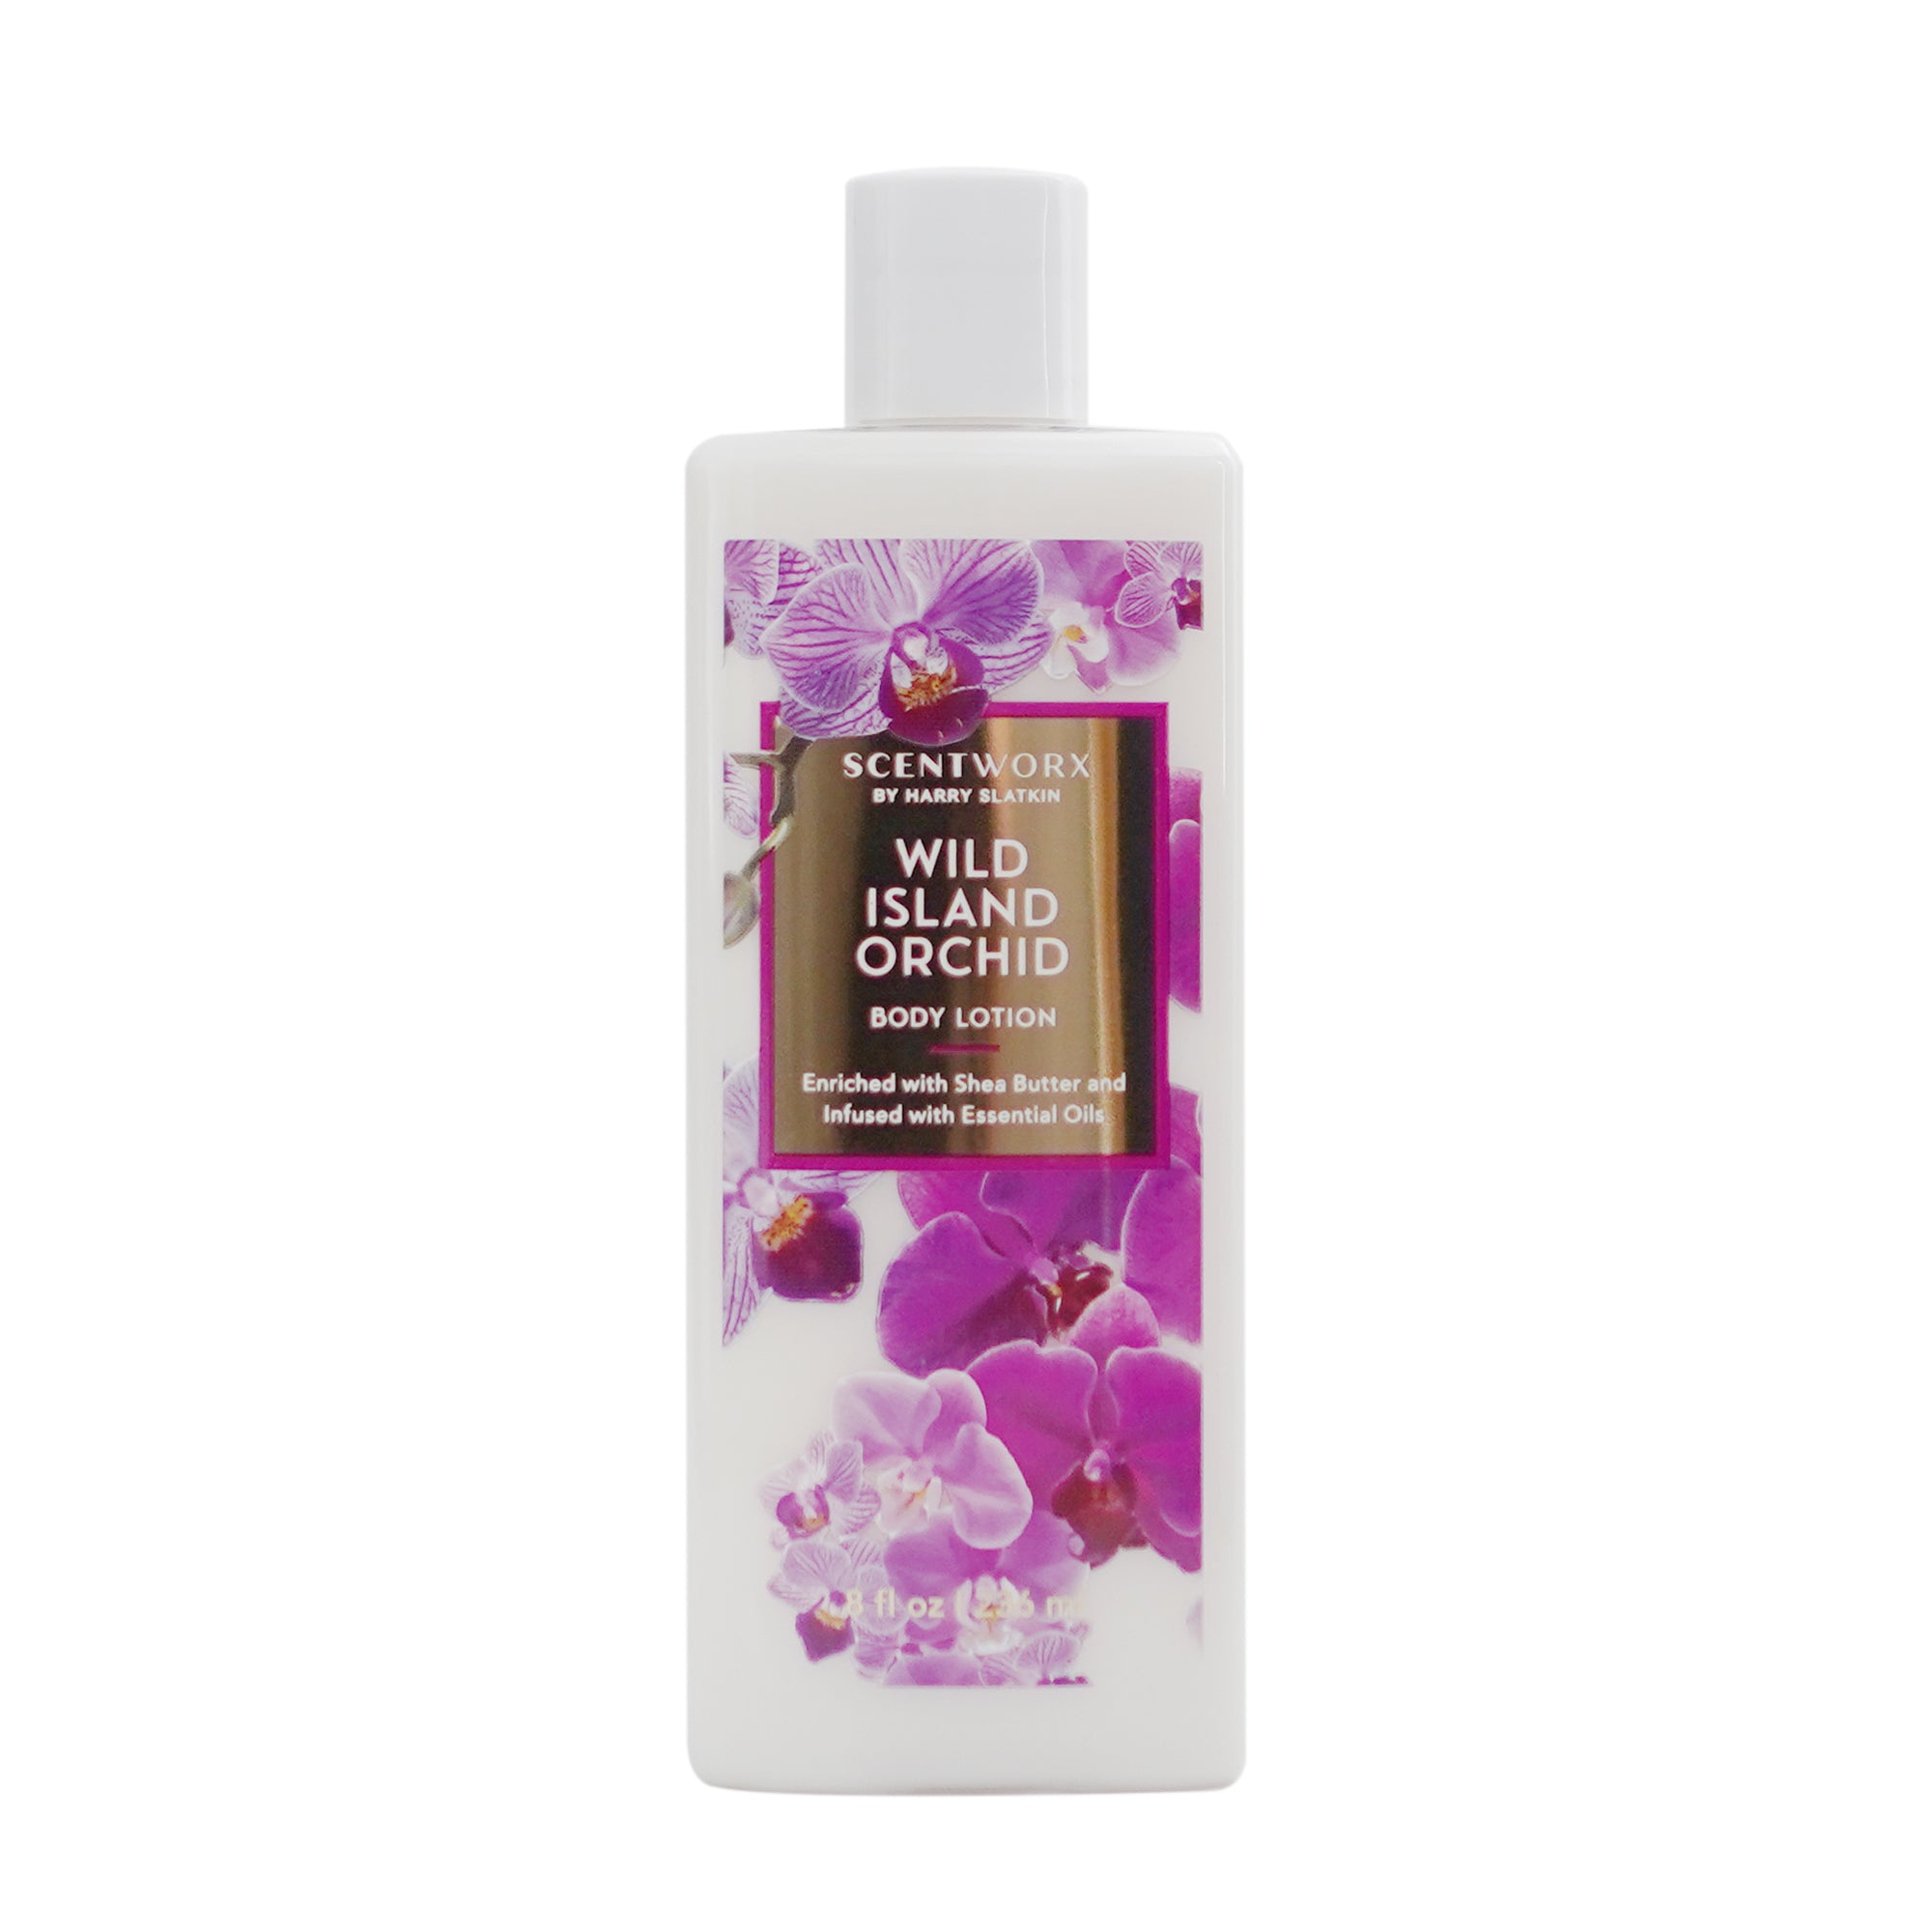 Wild Island Orchid Body Lotion